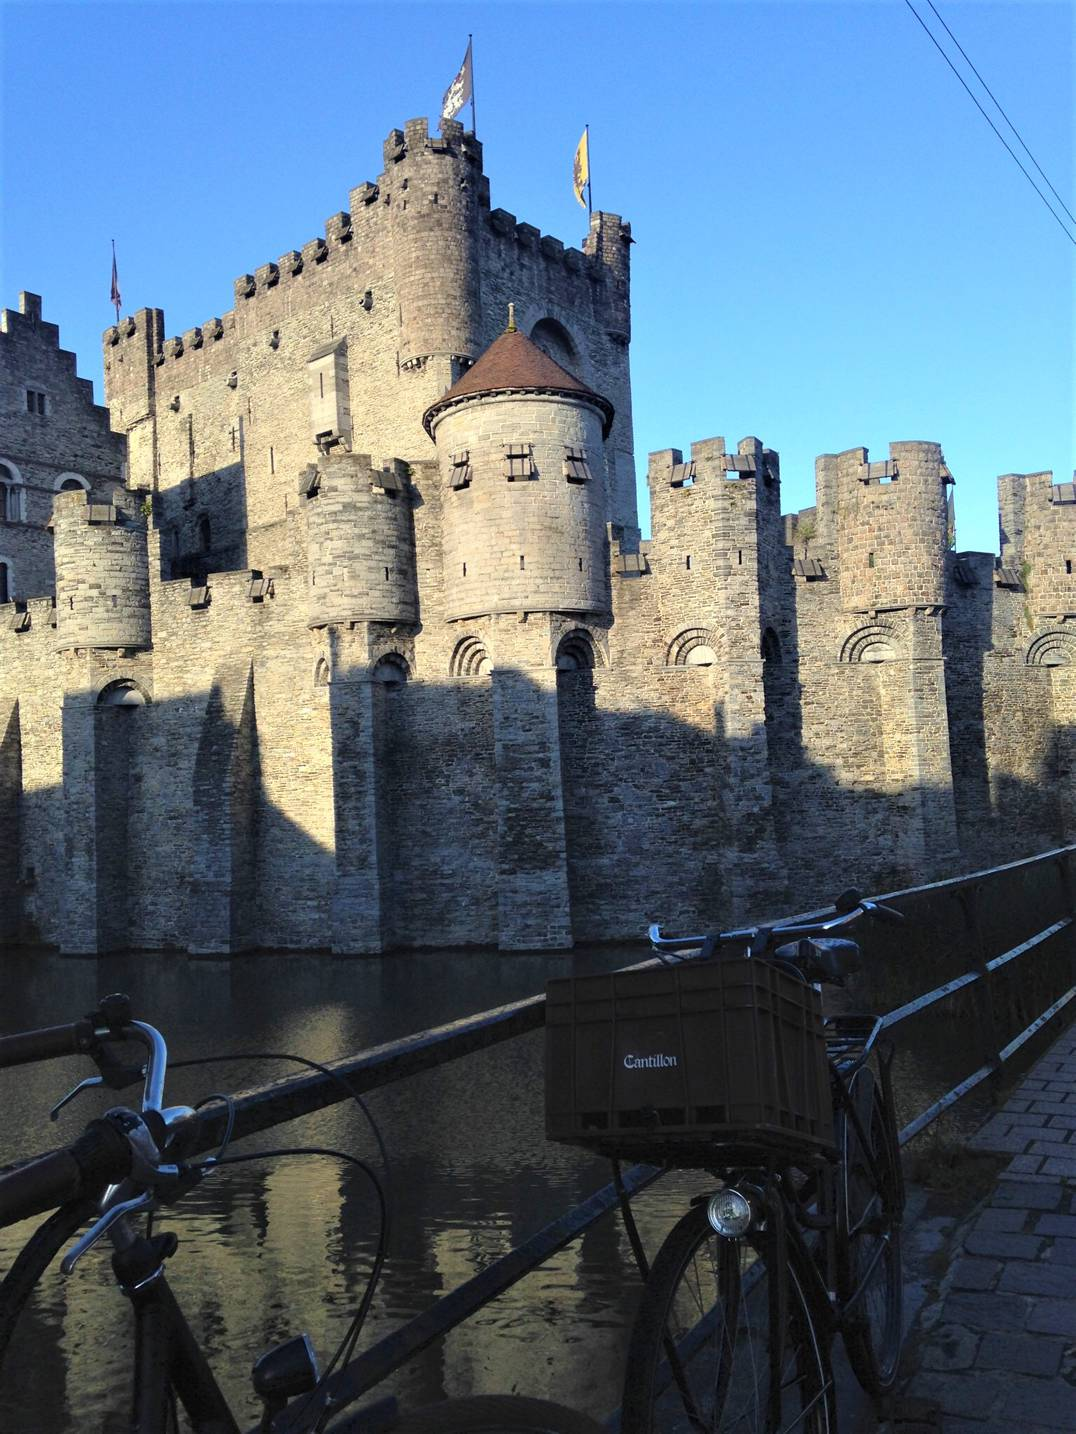 A picture of Gravensteen castle in Ghent, Belgium with a bike in the fore ground.